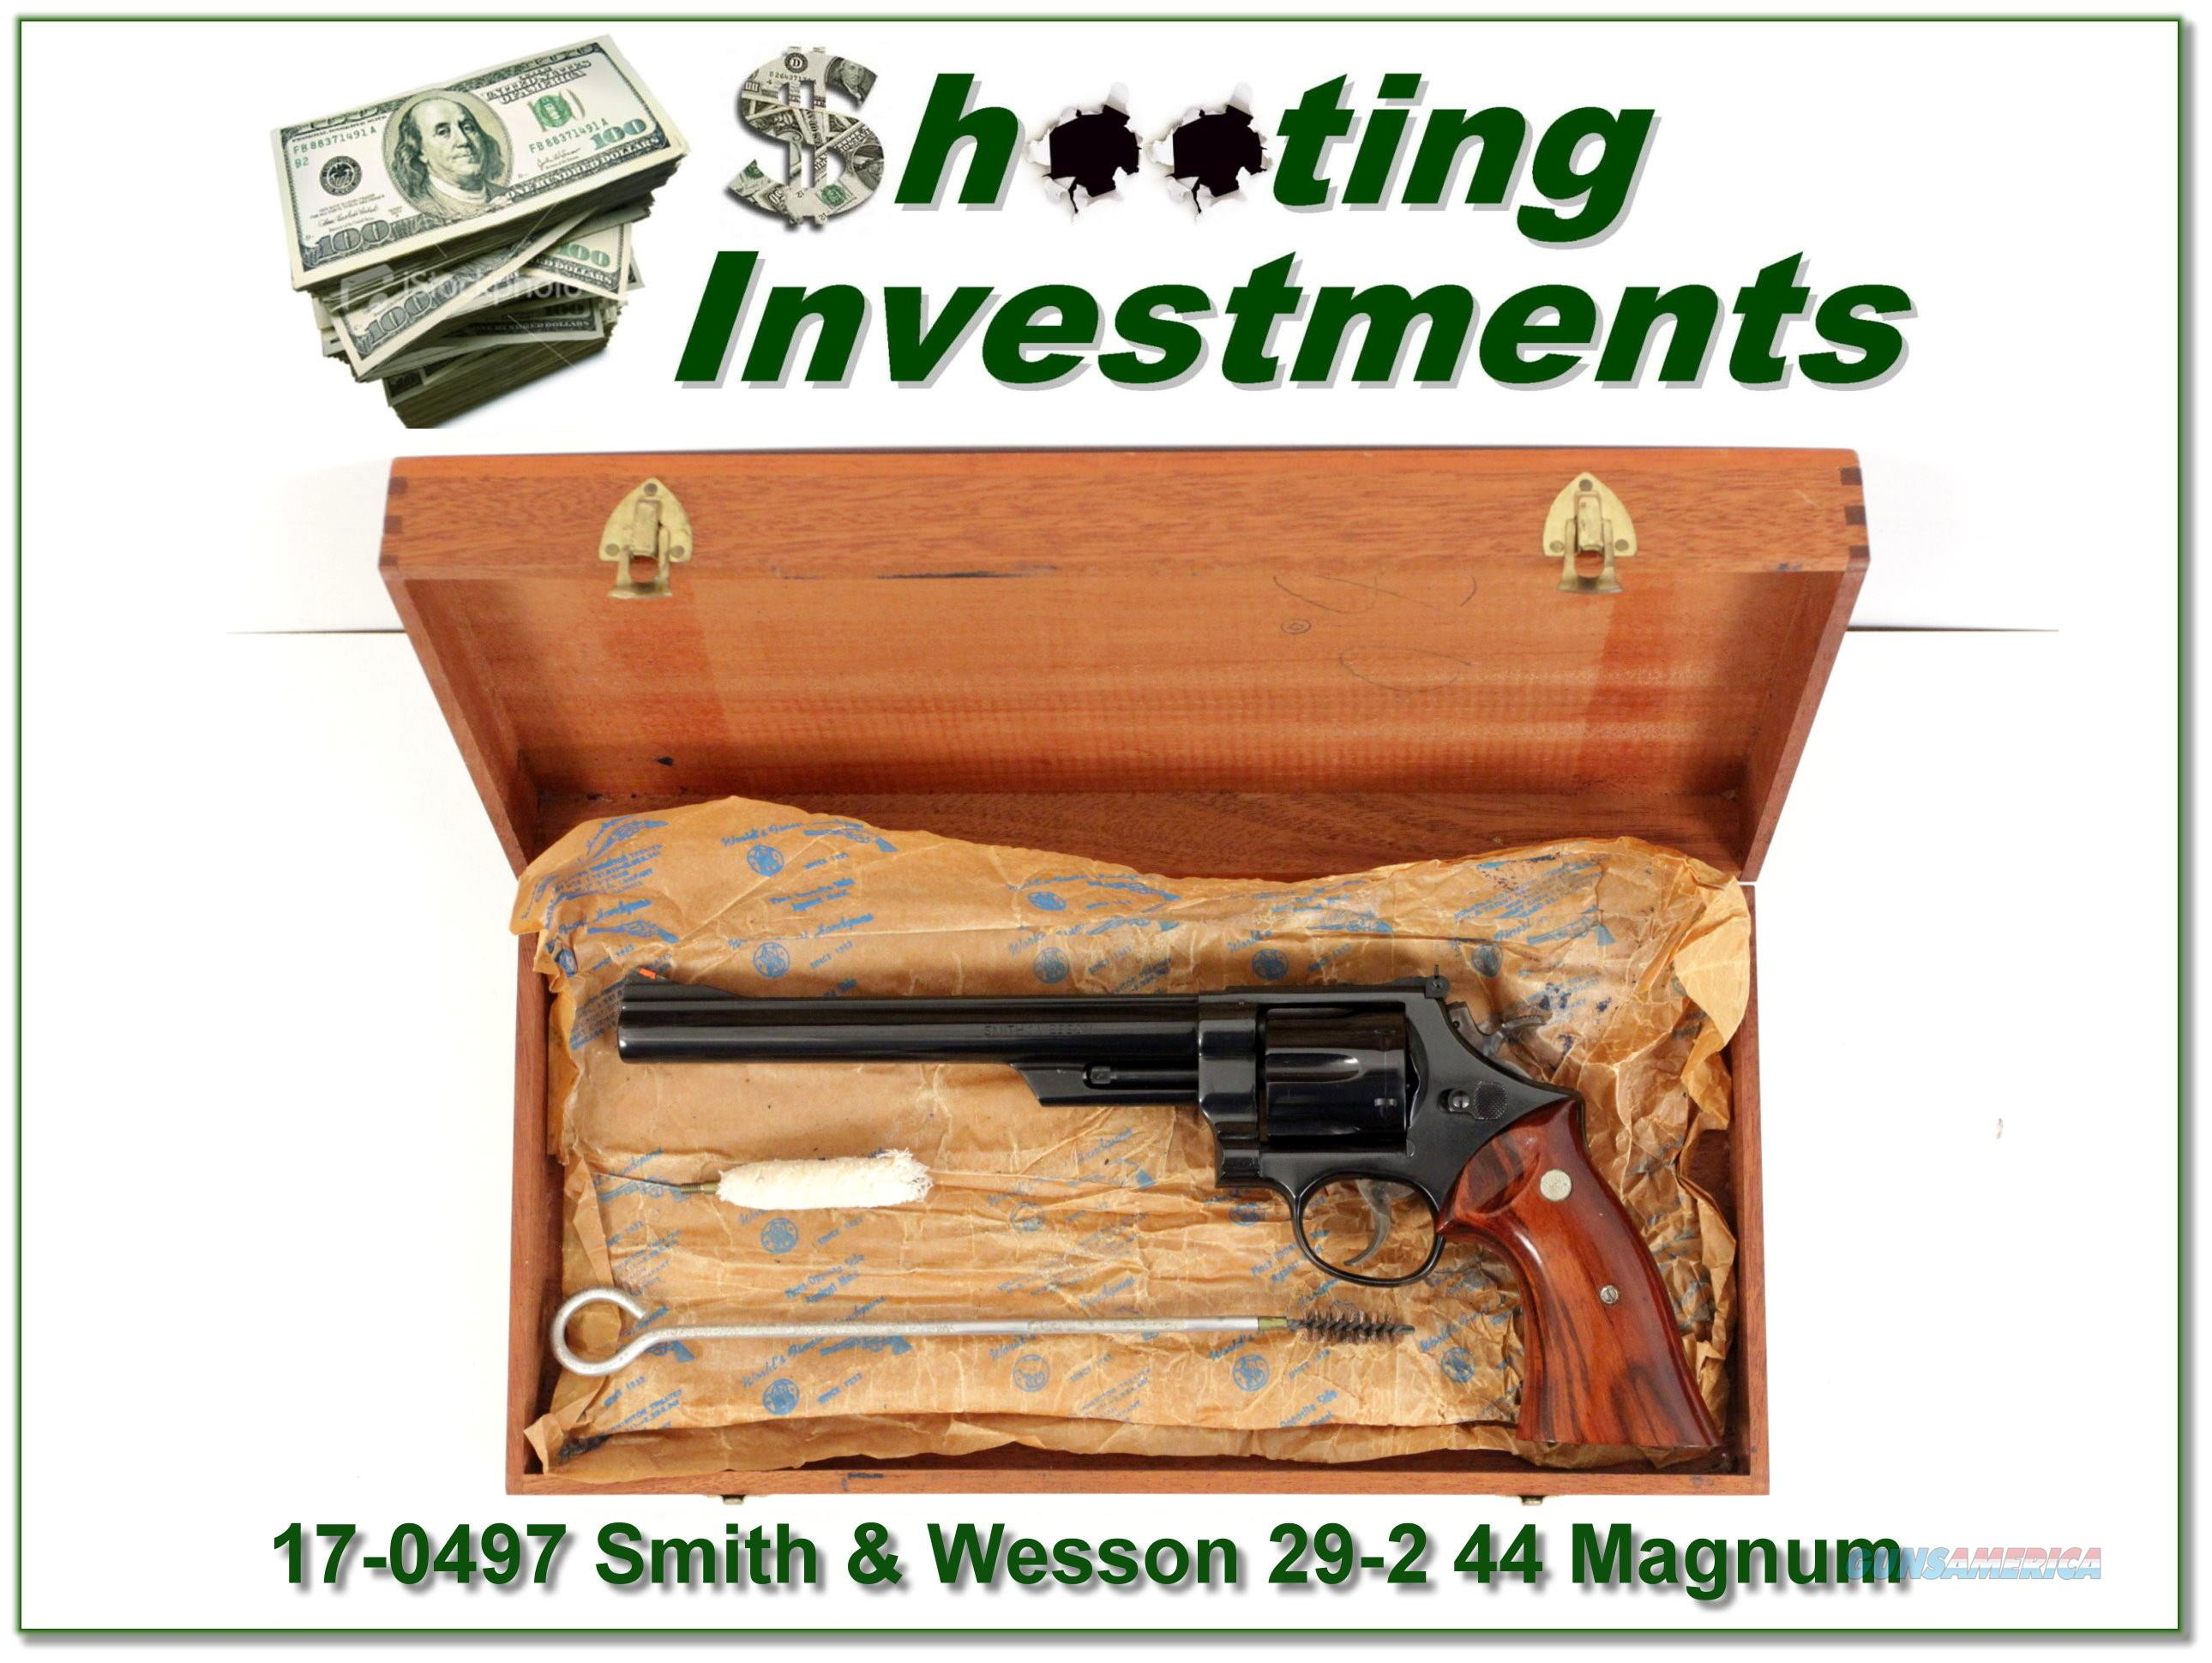 Smith & Wesson 29-2 44 Mag 8 3/8in Exc Cond in wooden case  Guns > Pistols > Smith & Wesson Pistols - Autos > Steel Frame